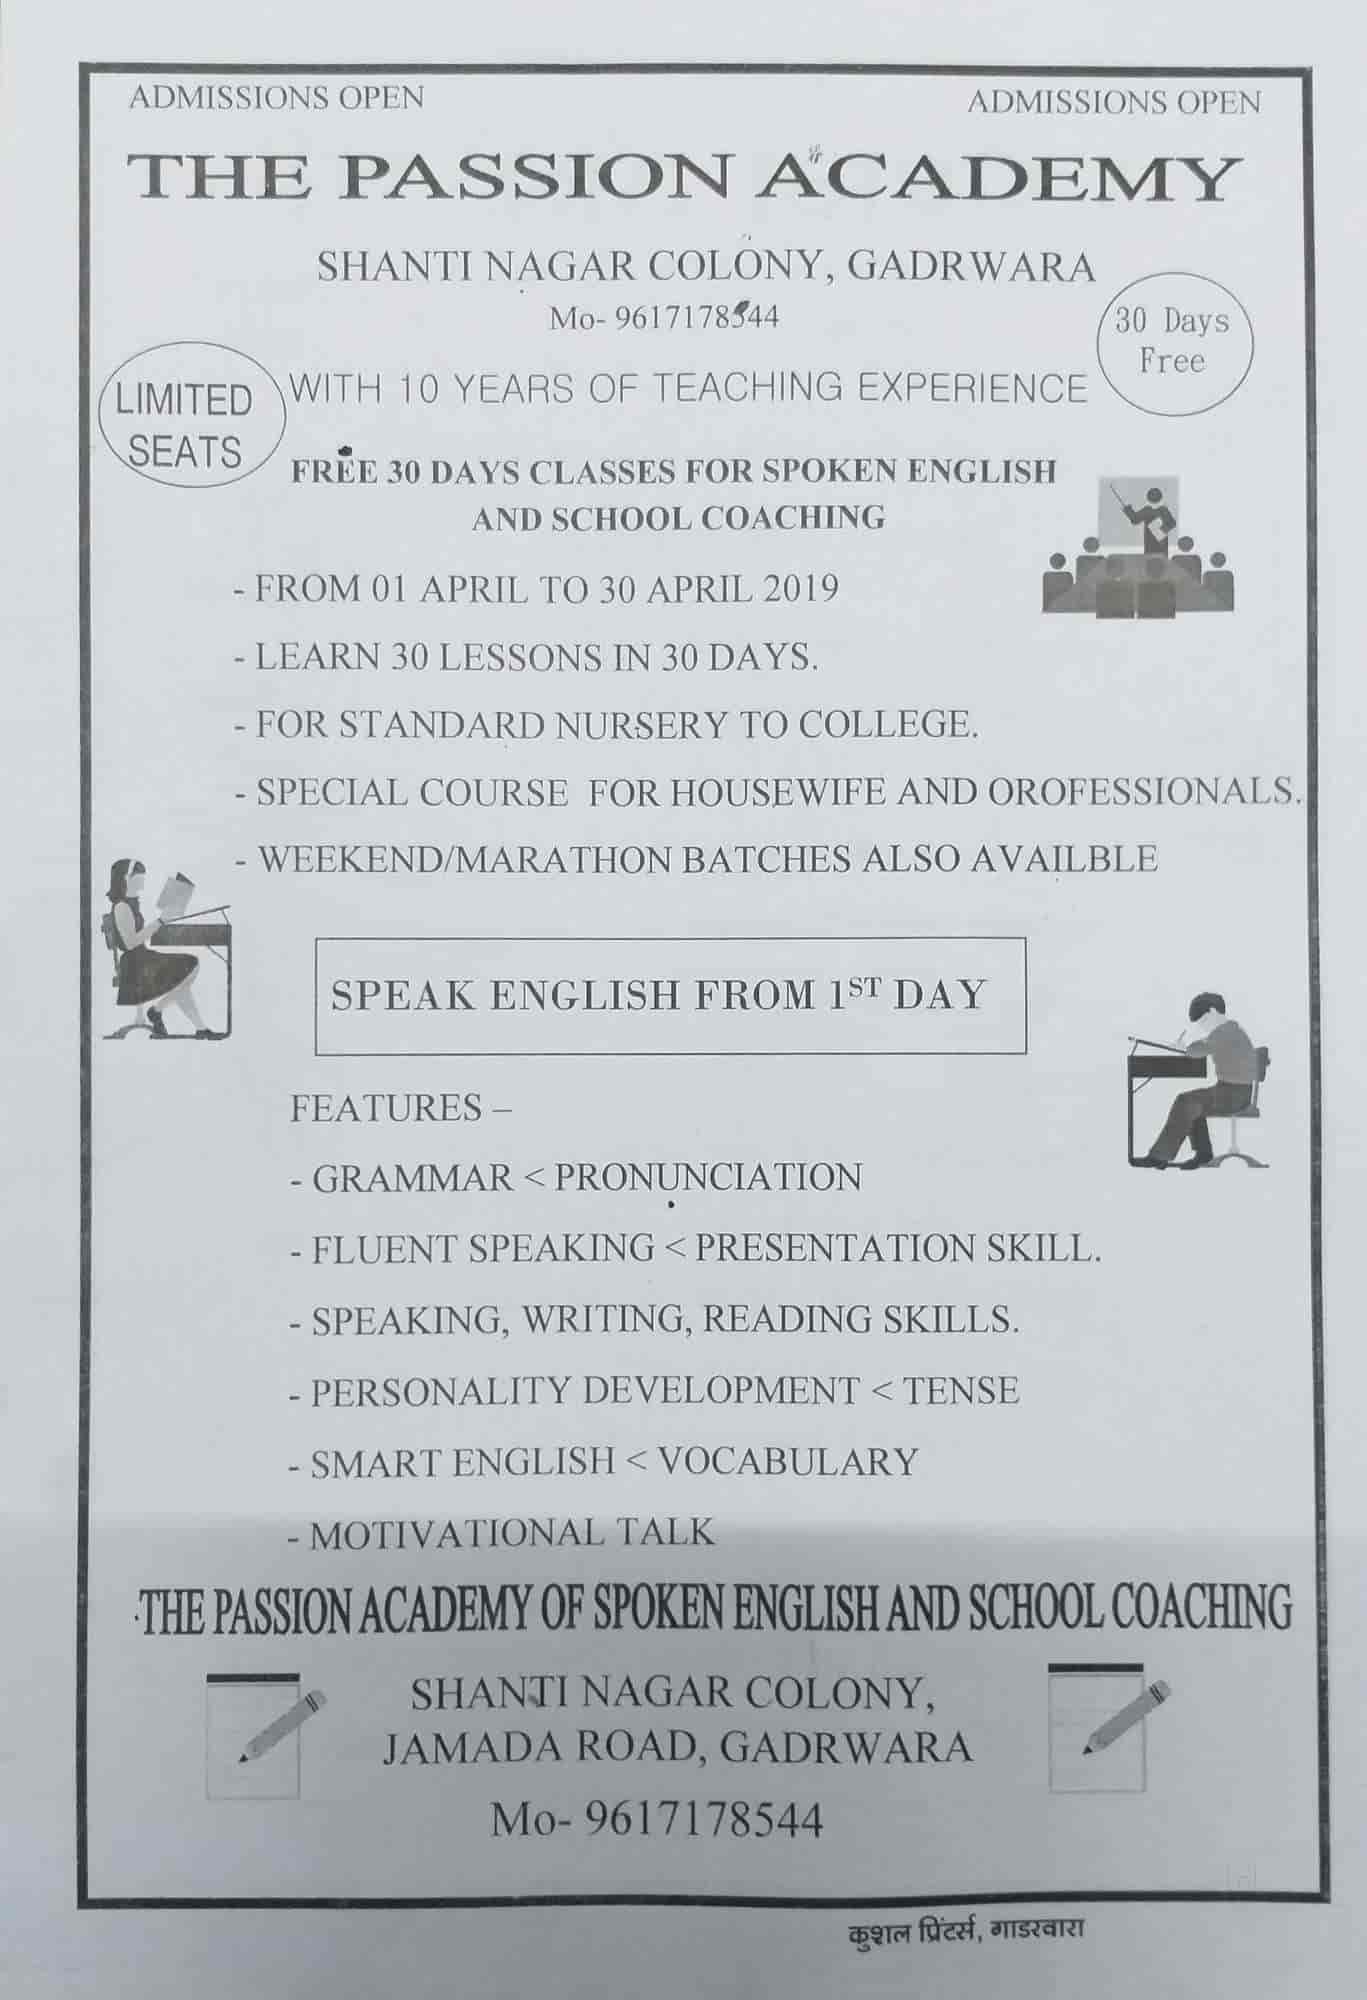 The Passion Academy Of Spoken English and School Coaching